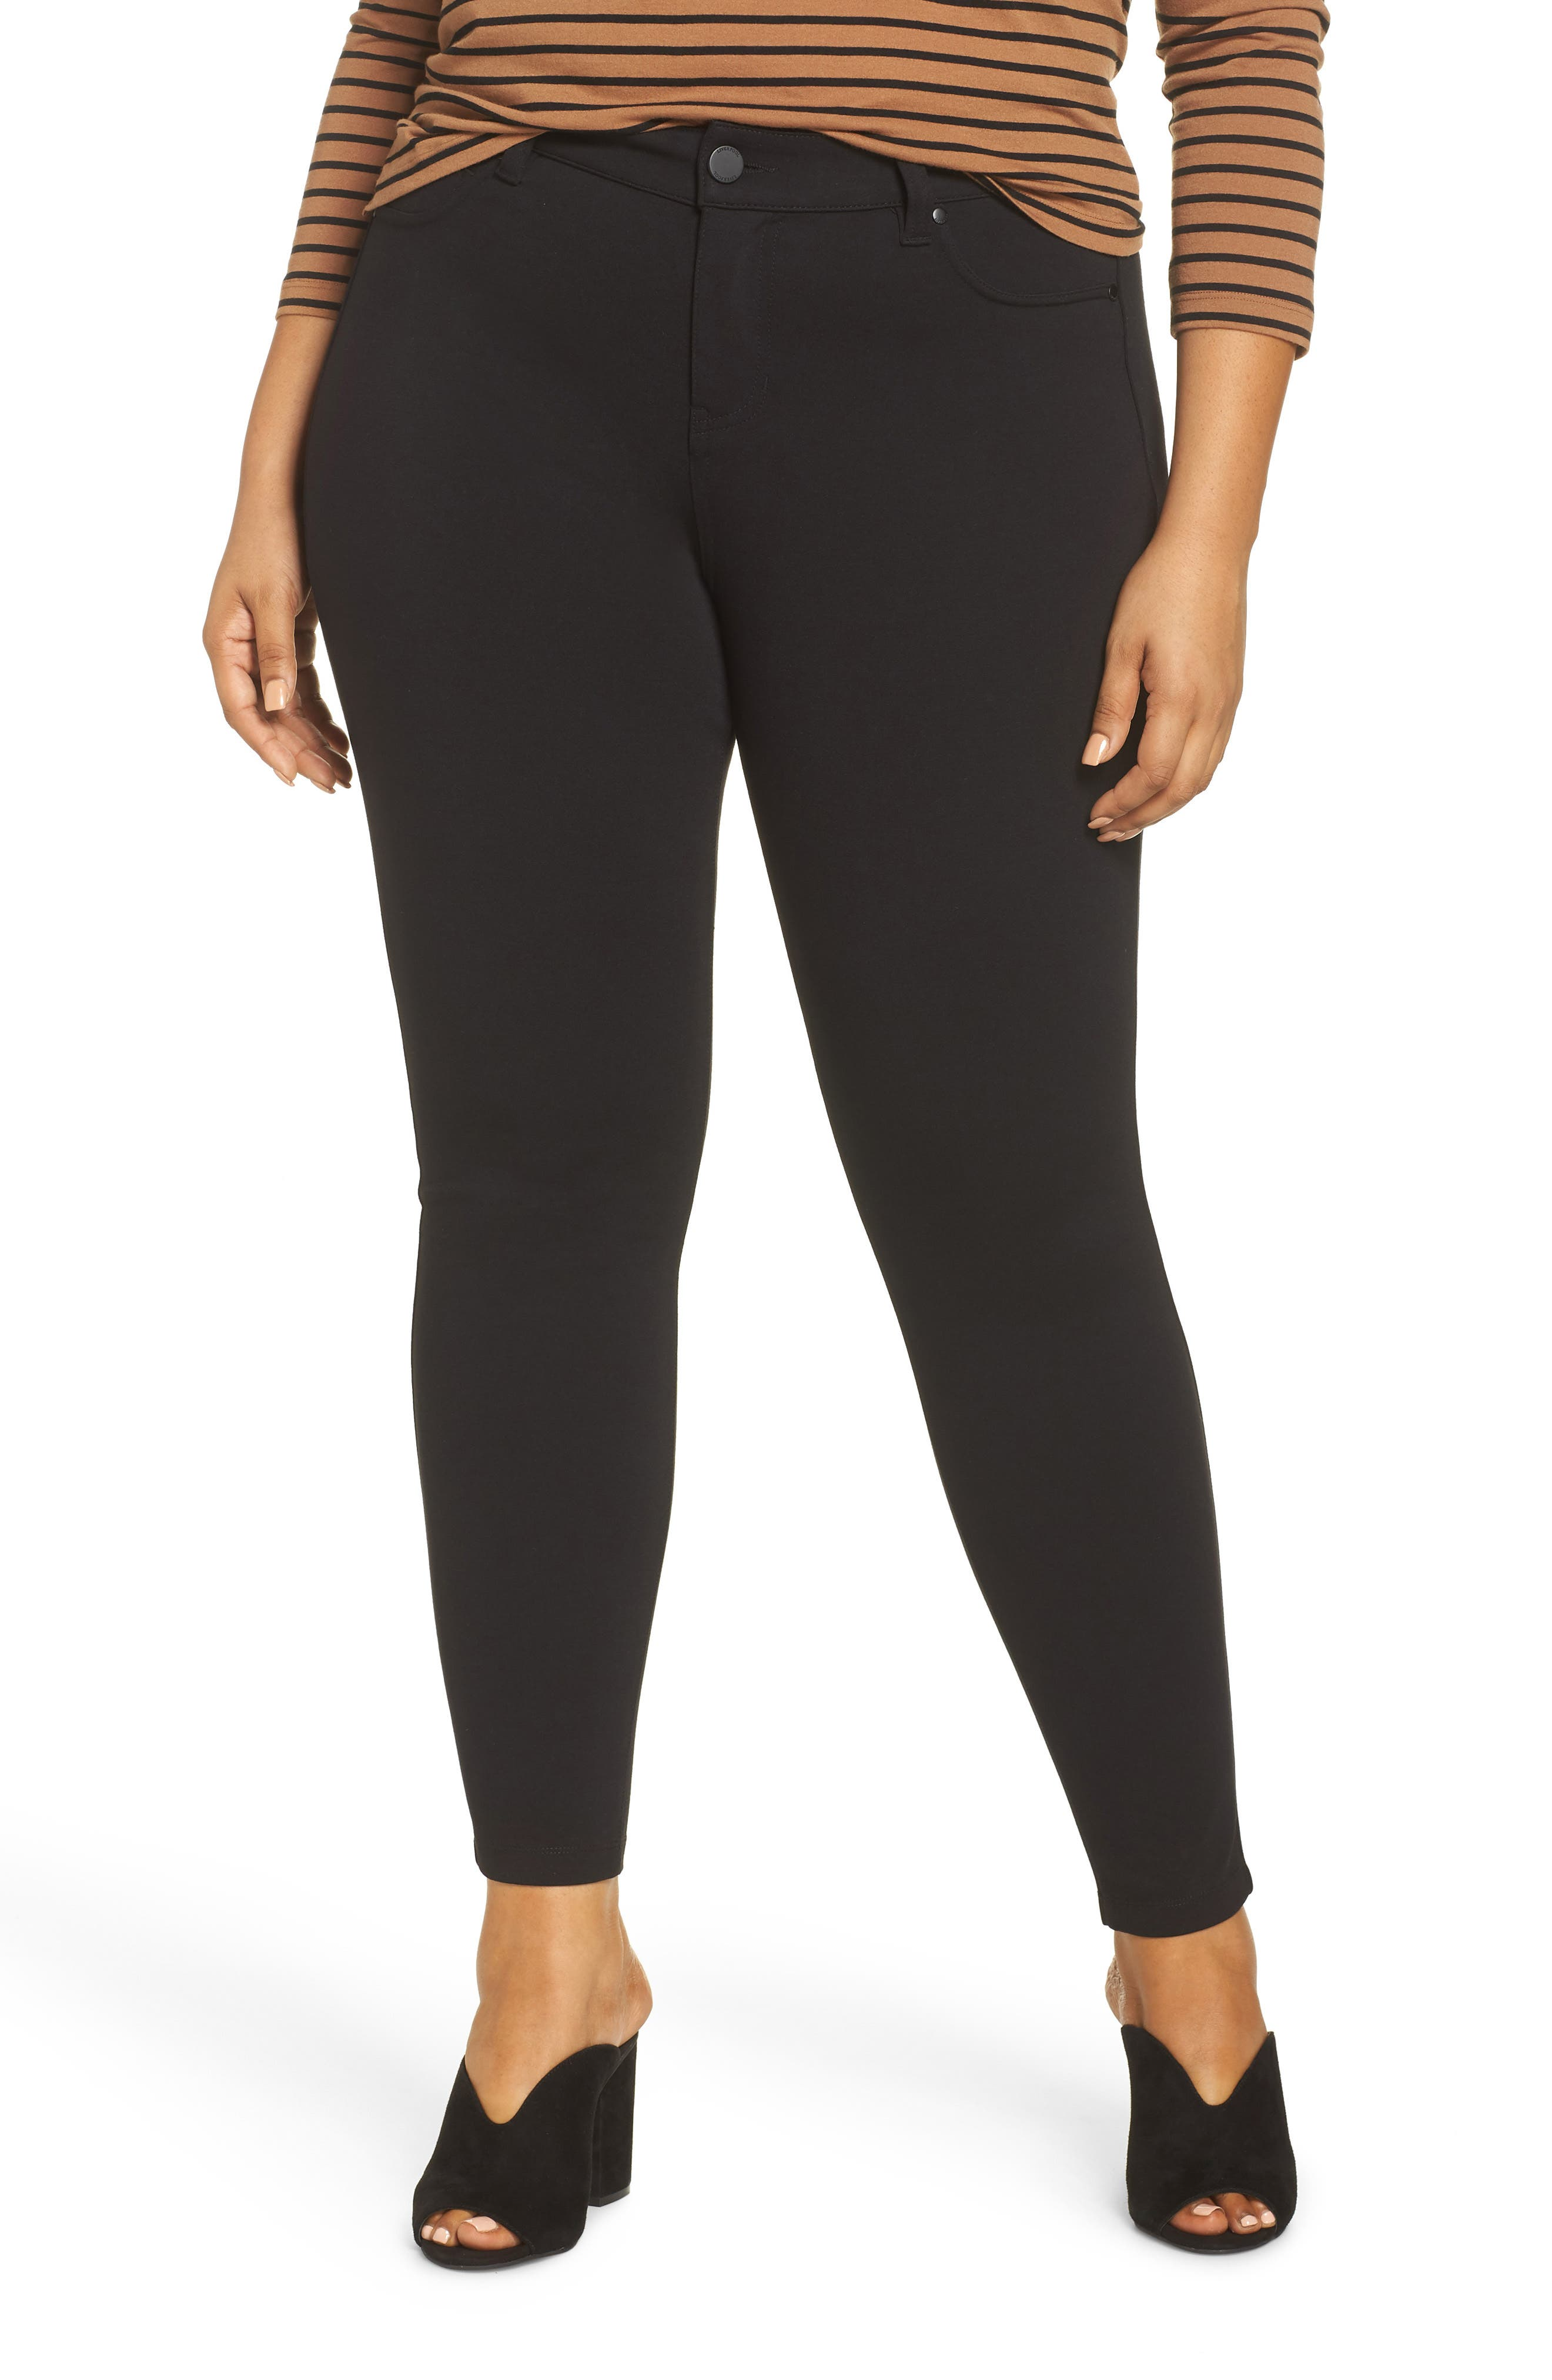 Plus Size Liverpool Madonna Leggings, Black